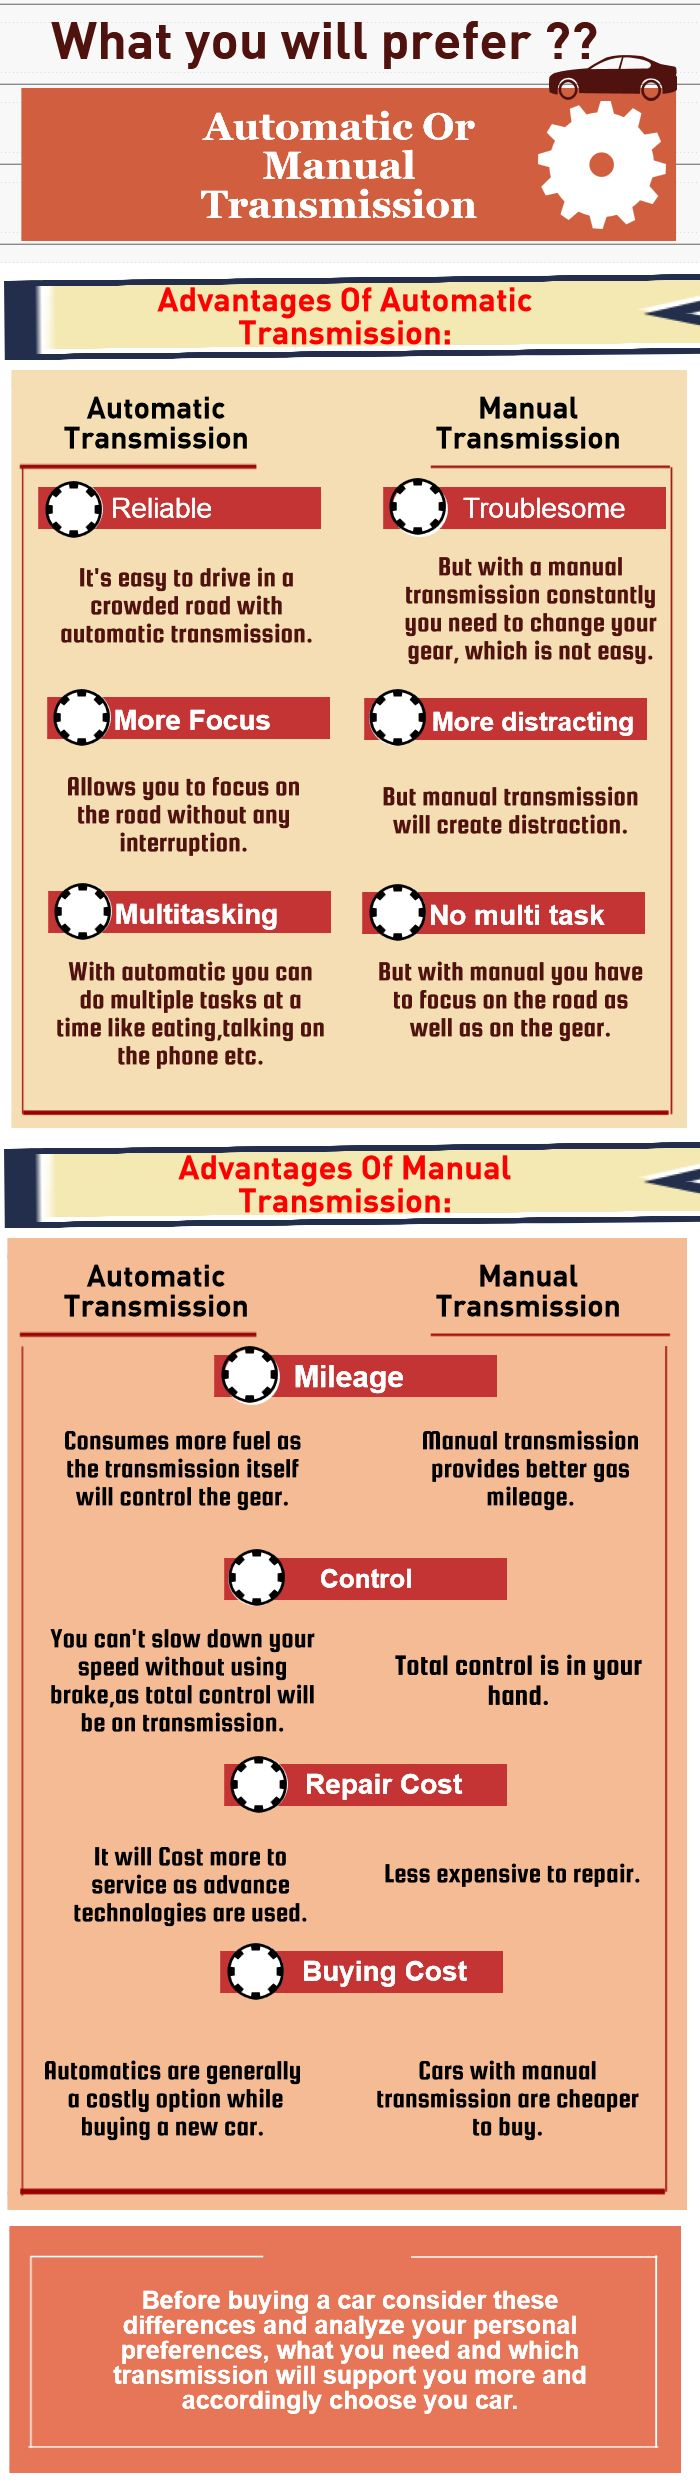 Do you want an automatic transmission option user manuals array this is a very useful info graphics as it will help you to know fandeluxe Choice Image